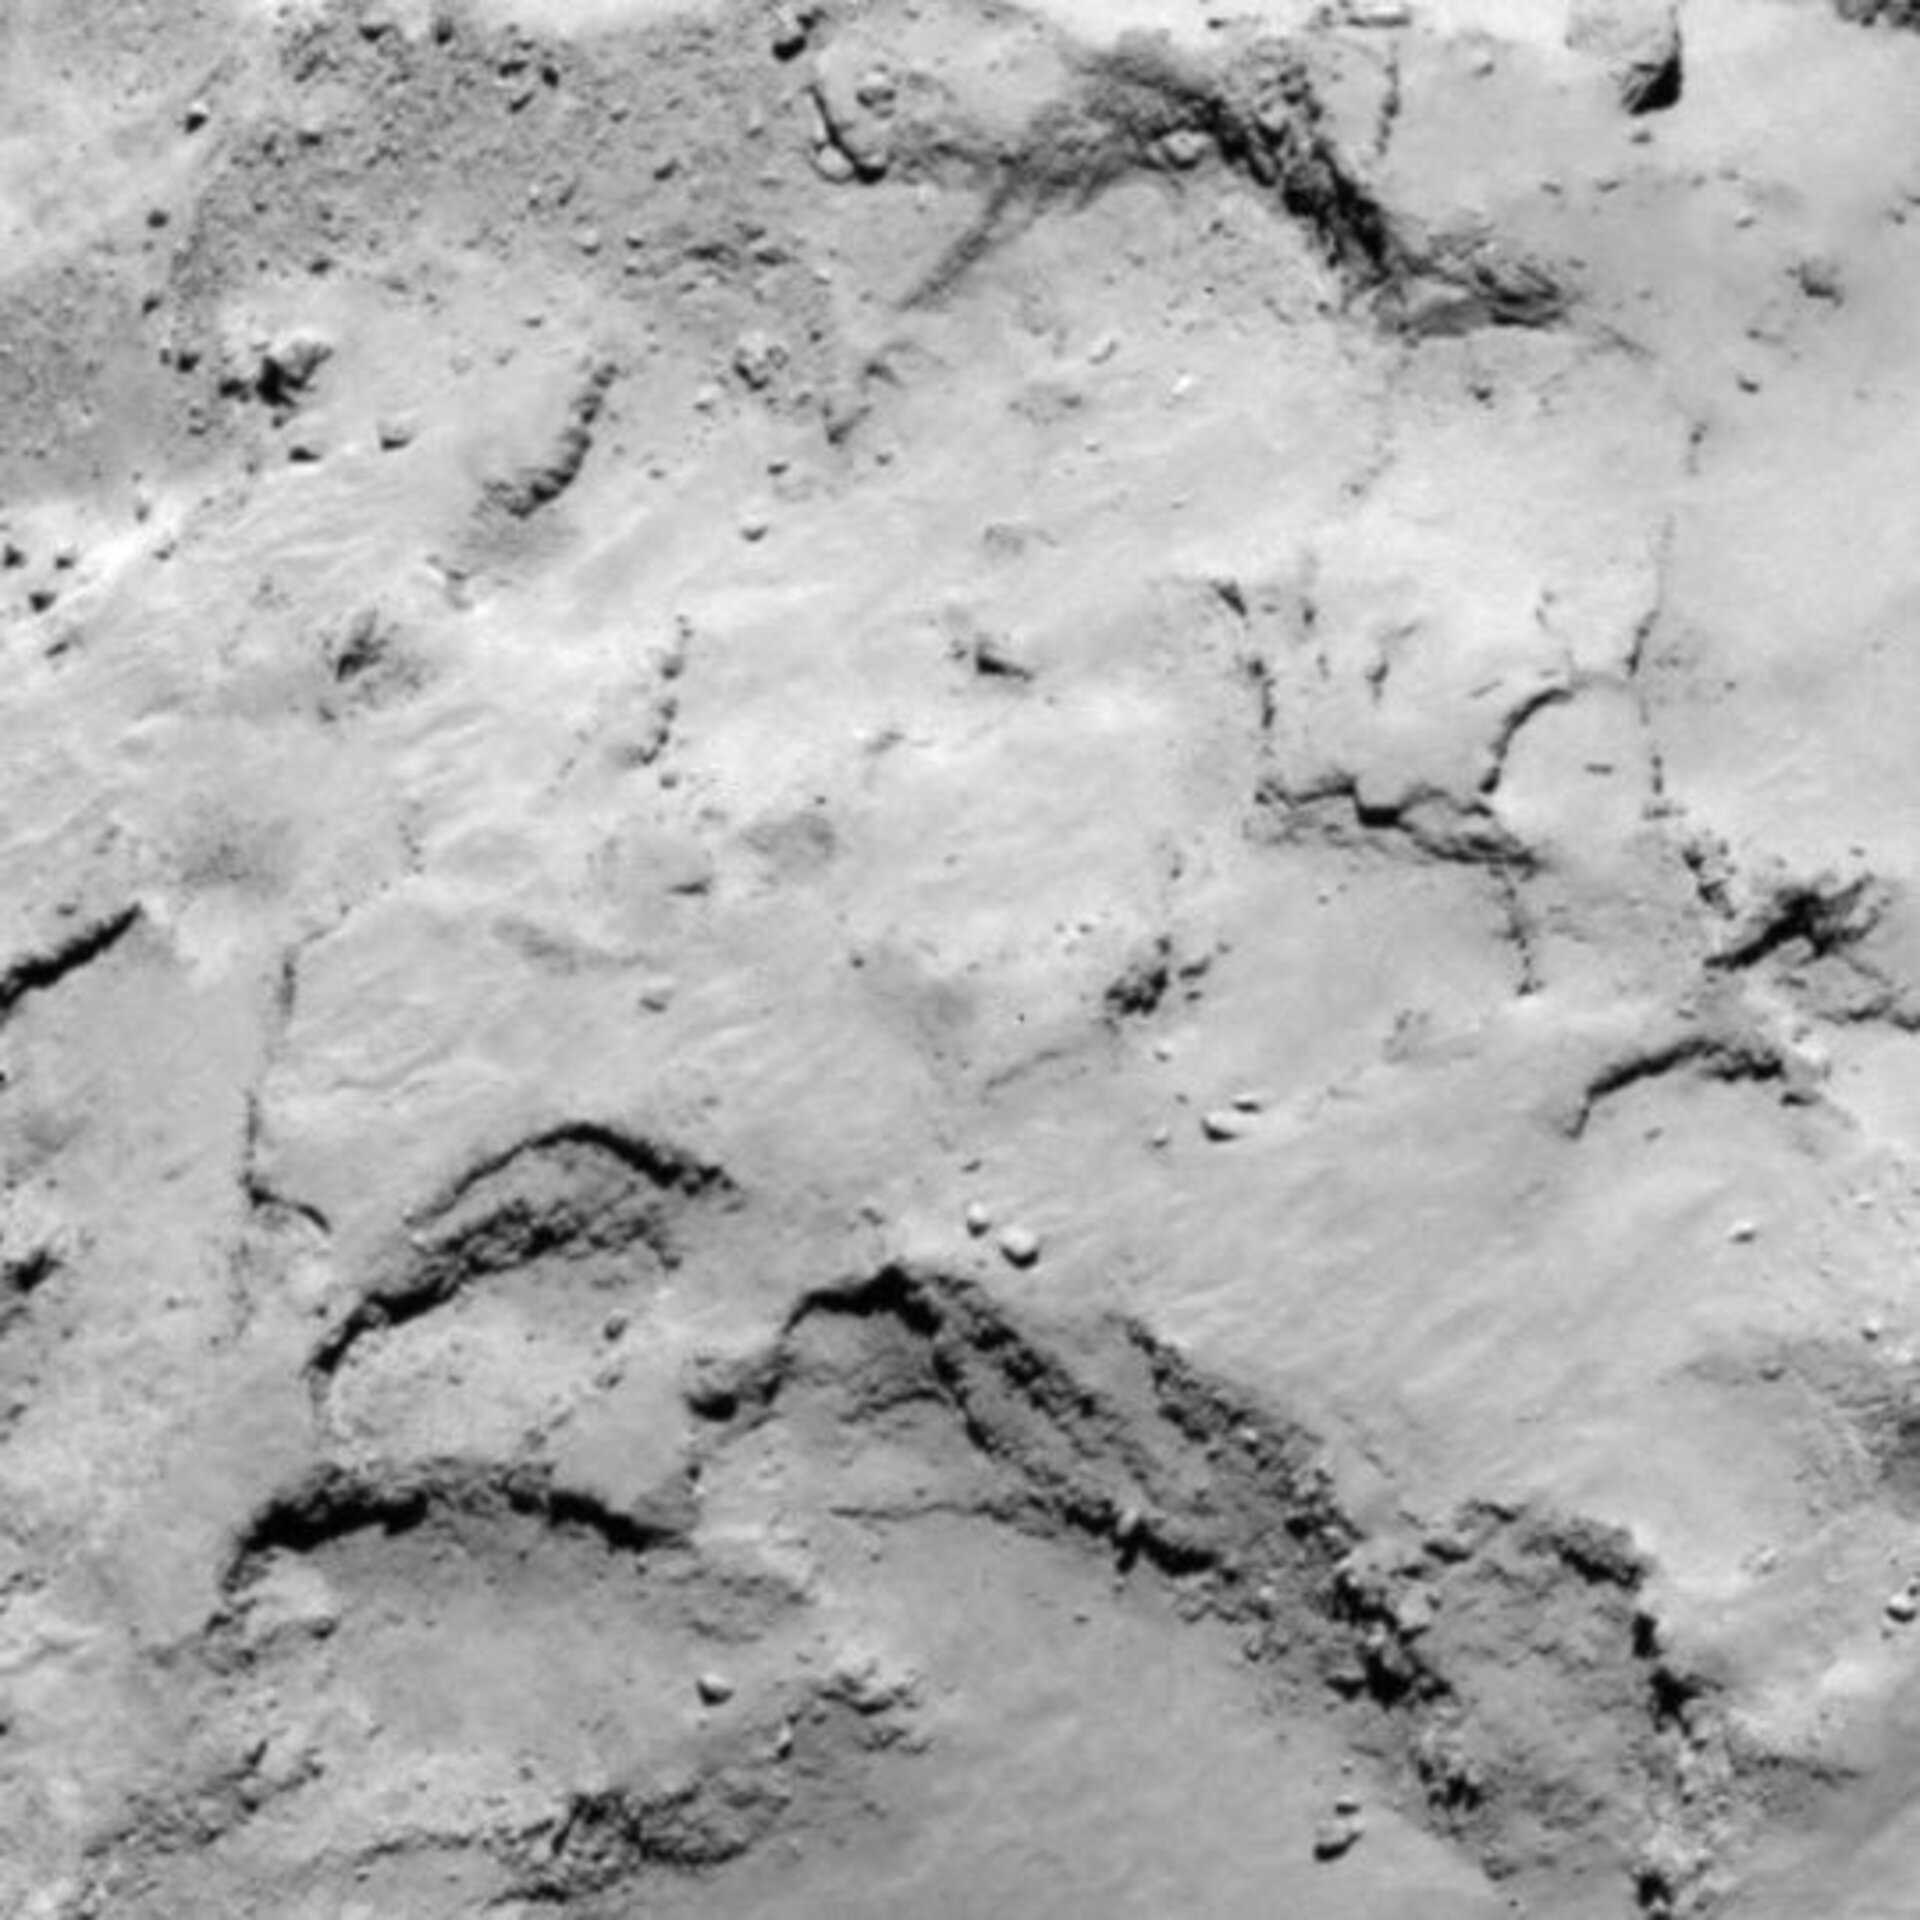 Candidate landing site J